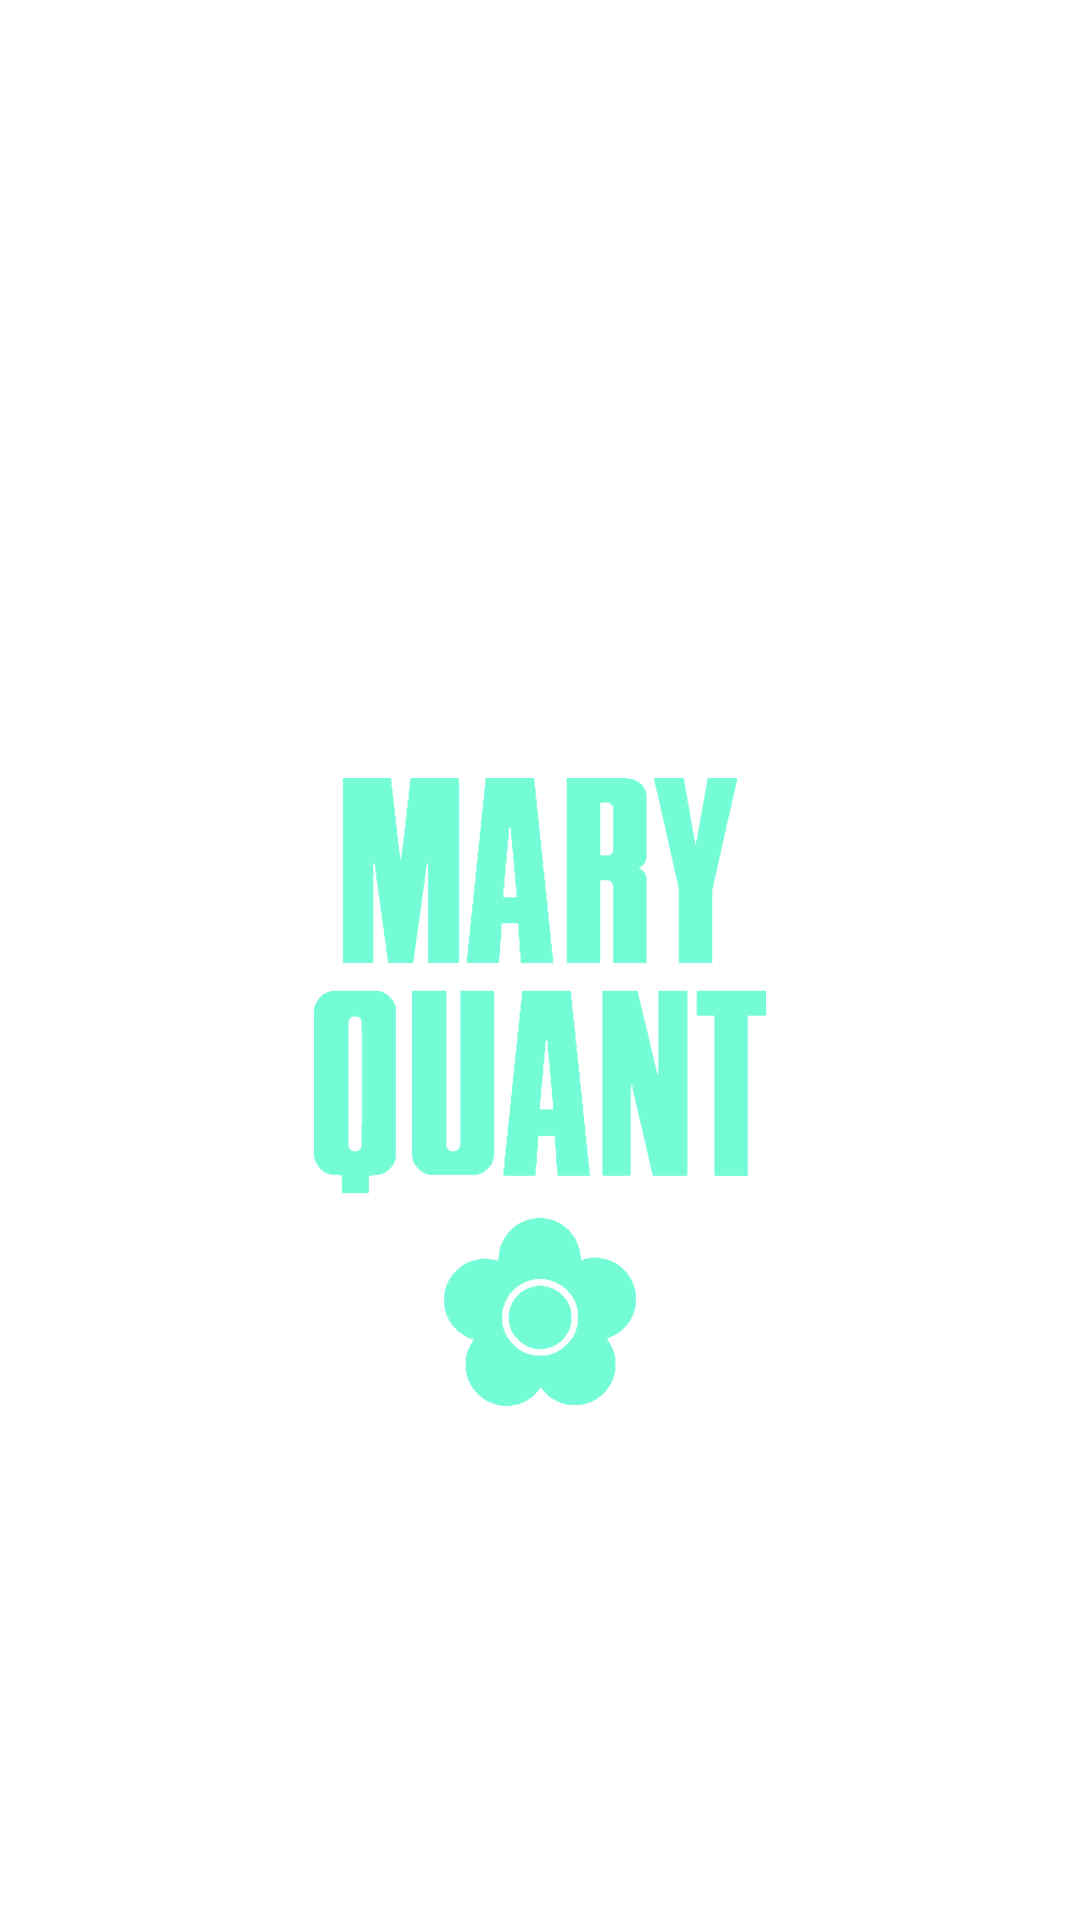 maryquant i14 - 20 MARY QUANT HQ Smartphone Wallpaper Collection